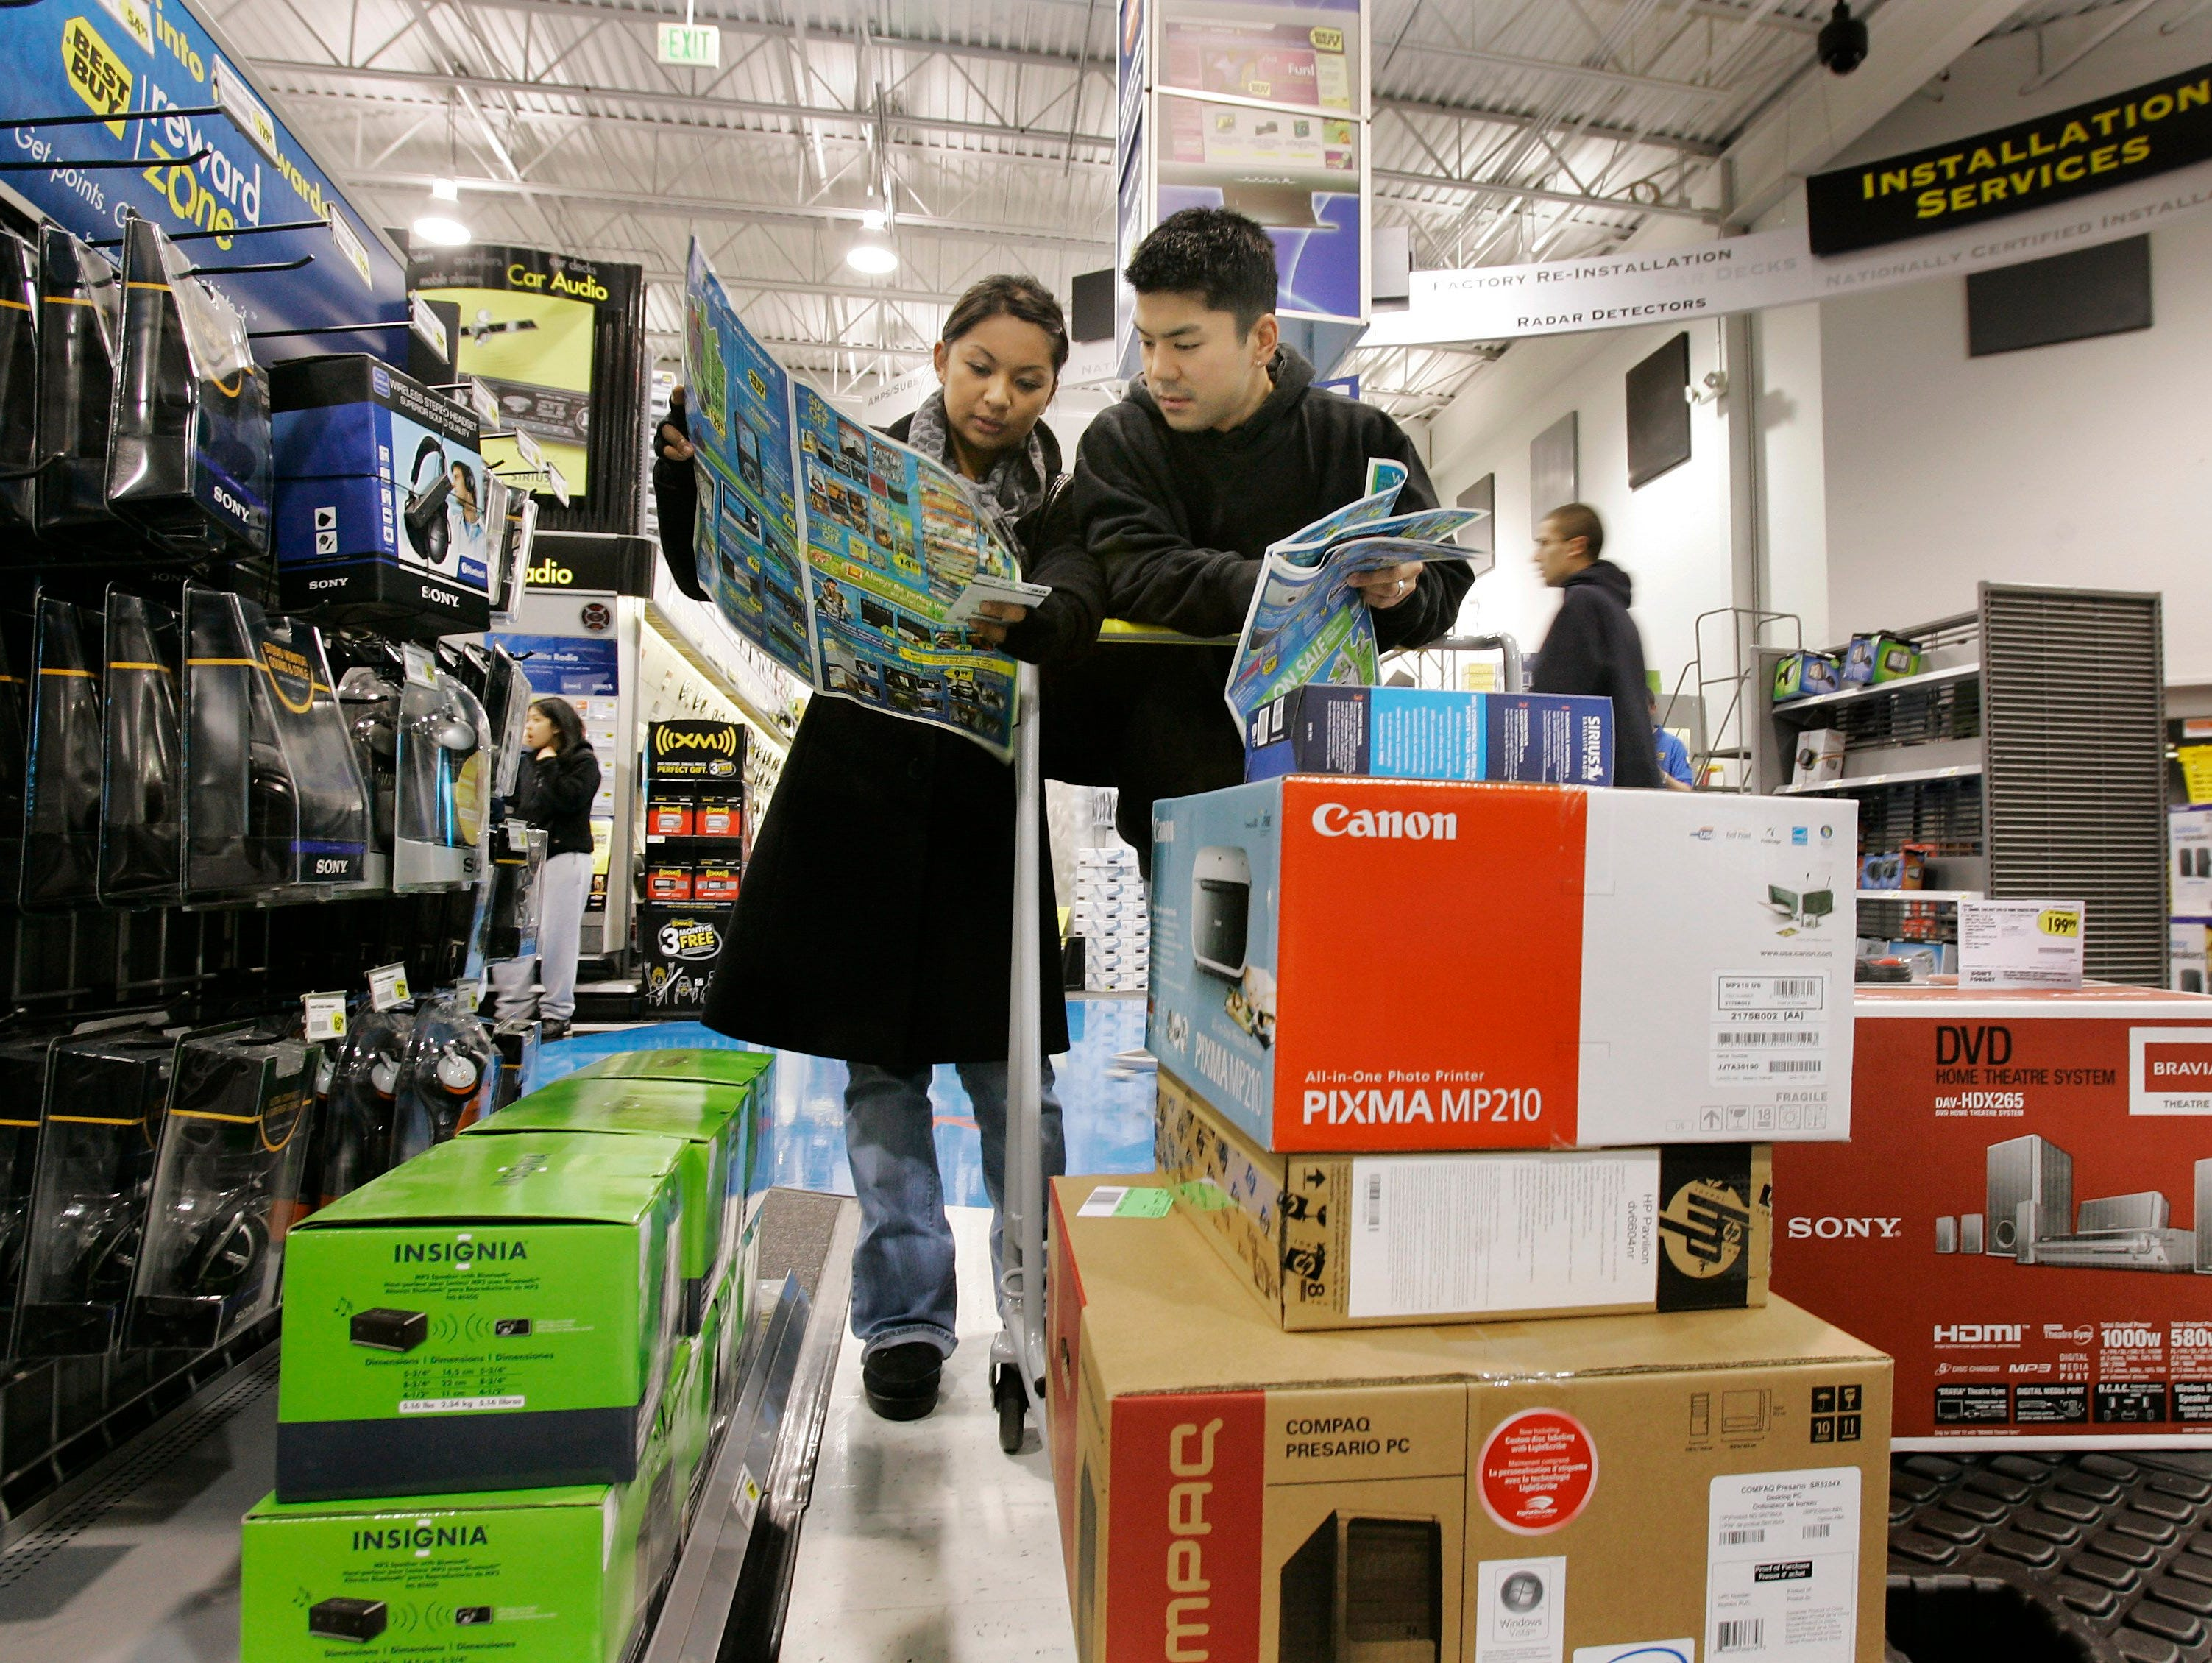 Tech gadgets and electronics are popular gifts during the holidays.